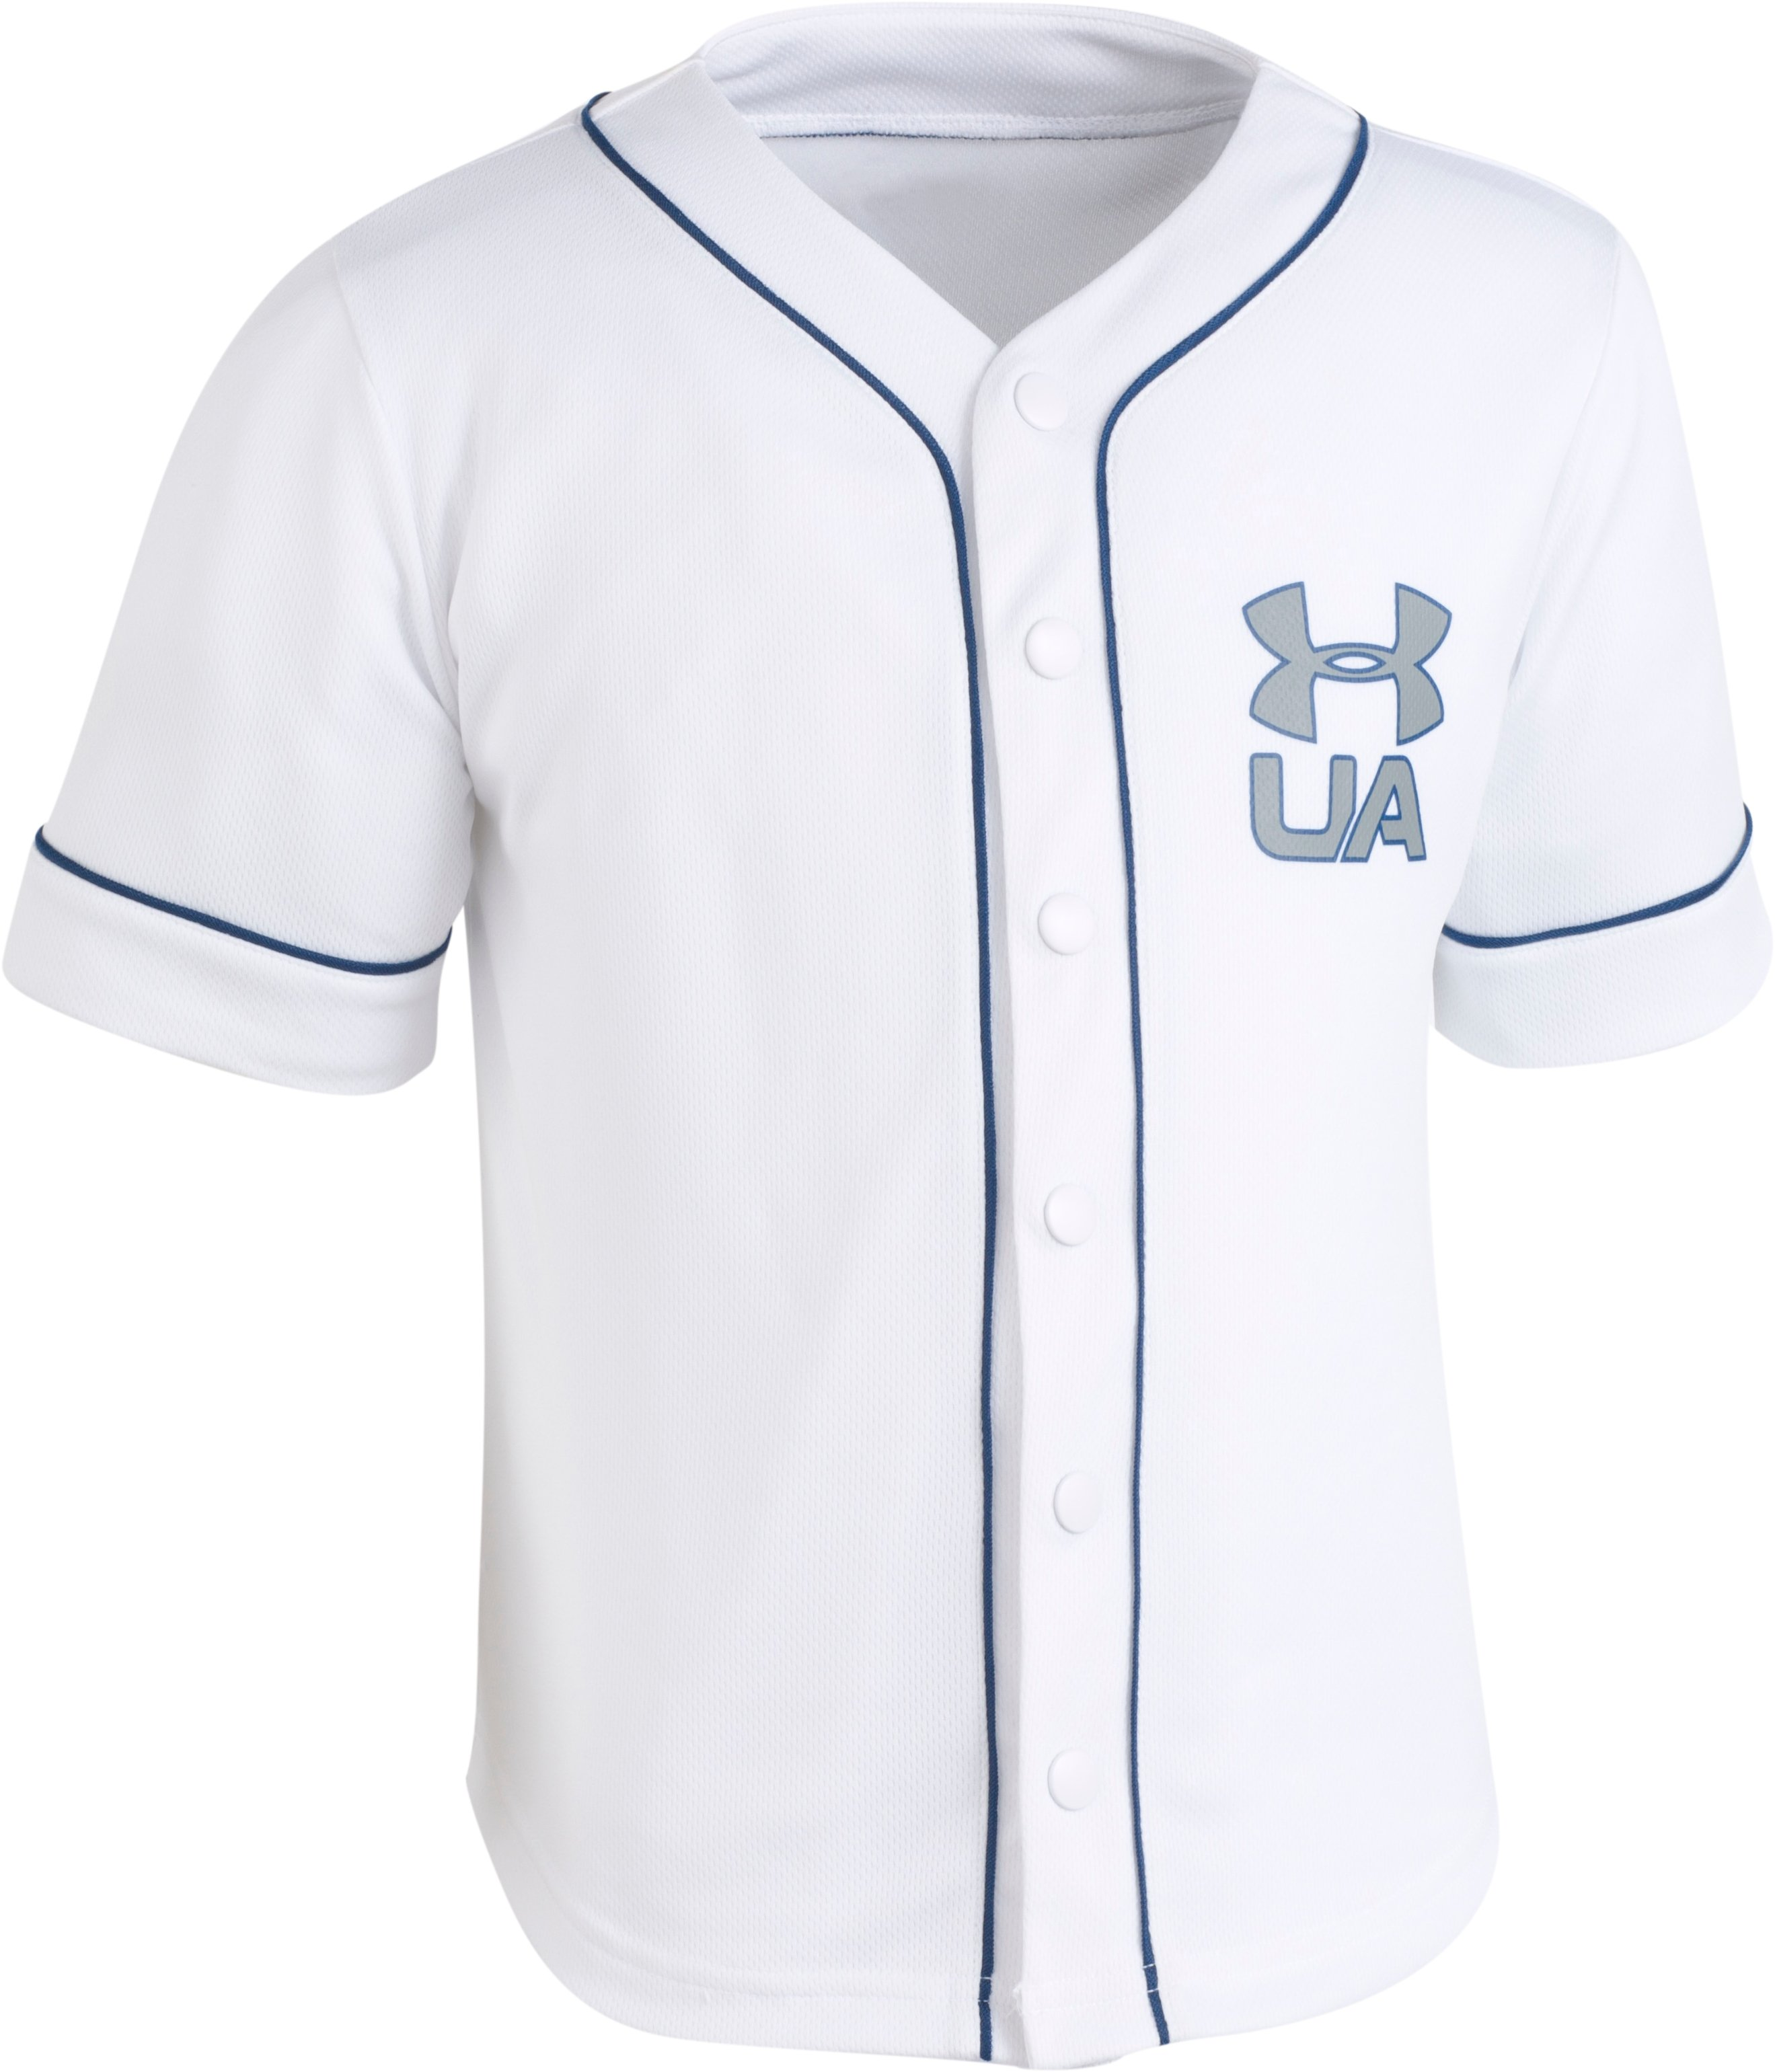 Boys' Pre-School UA Homerun Baseball Jersey T-Shirt  2 Colors $30.00